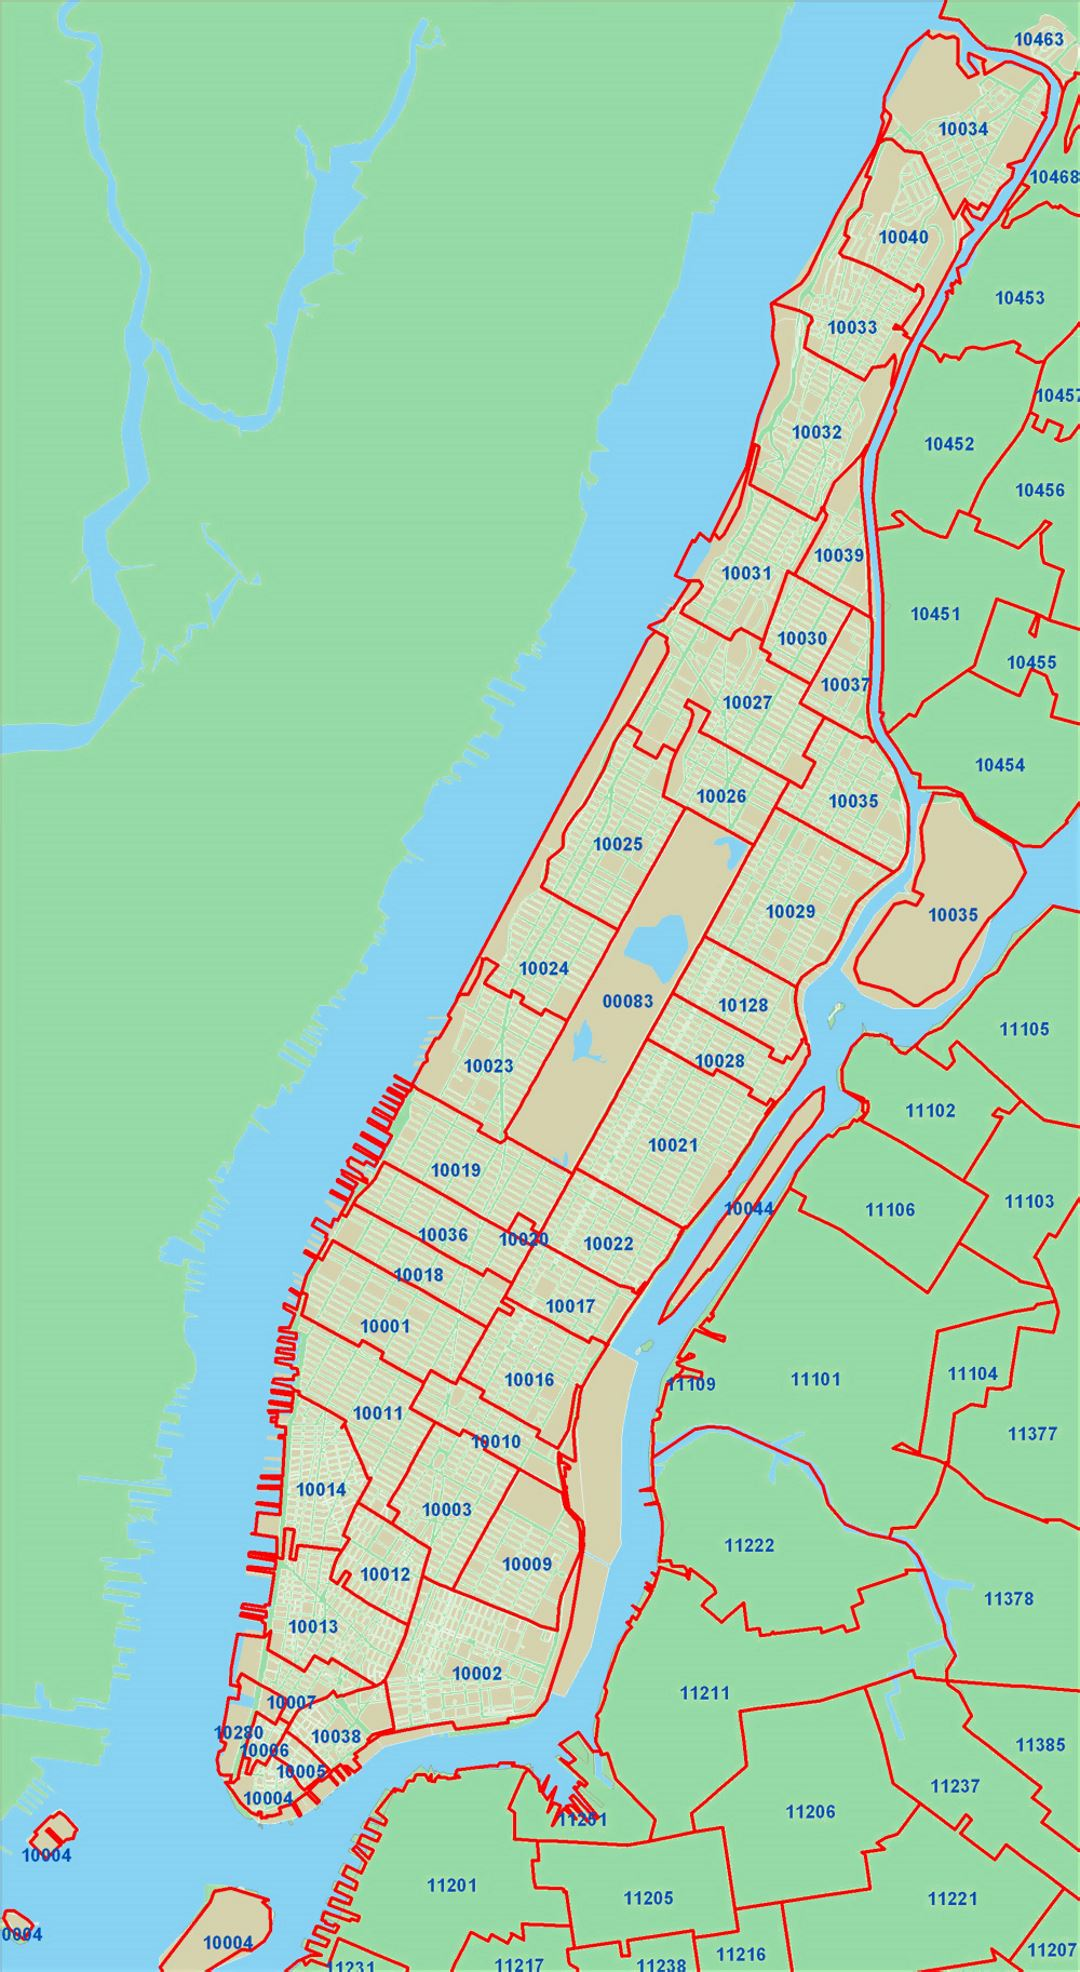 Detailed zip codes map of New York city | New York | USA (United